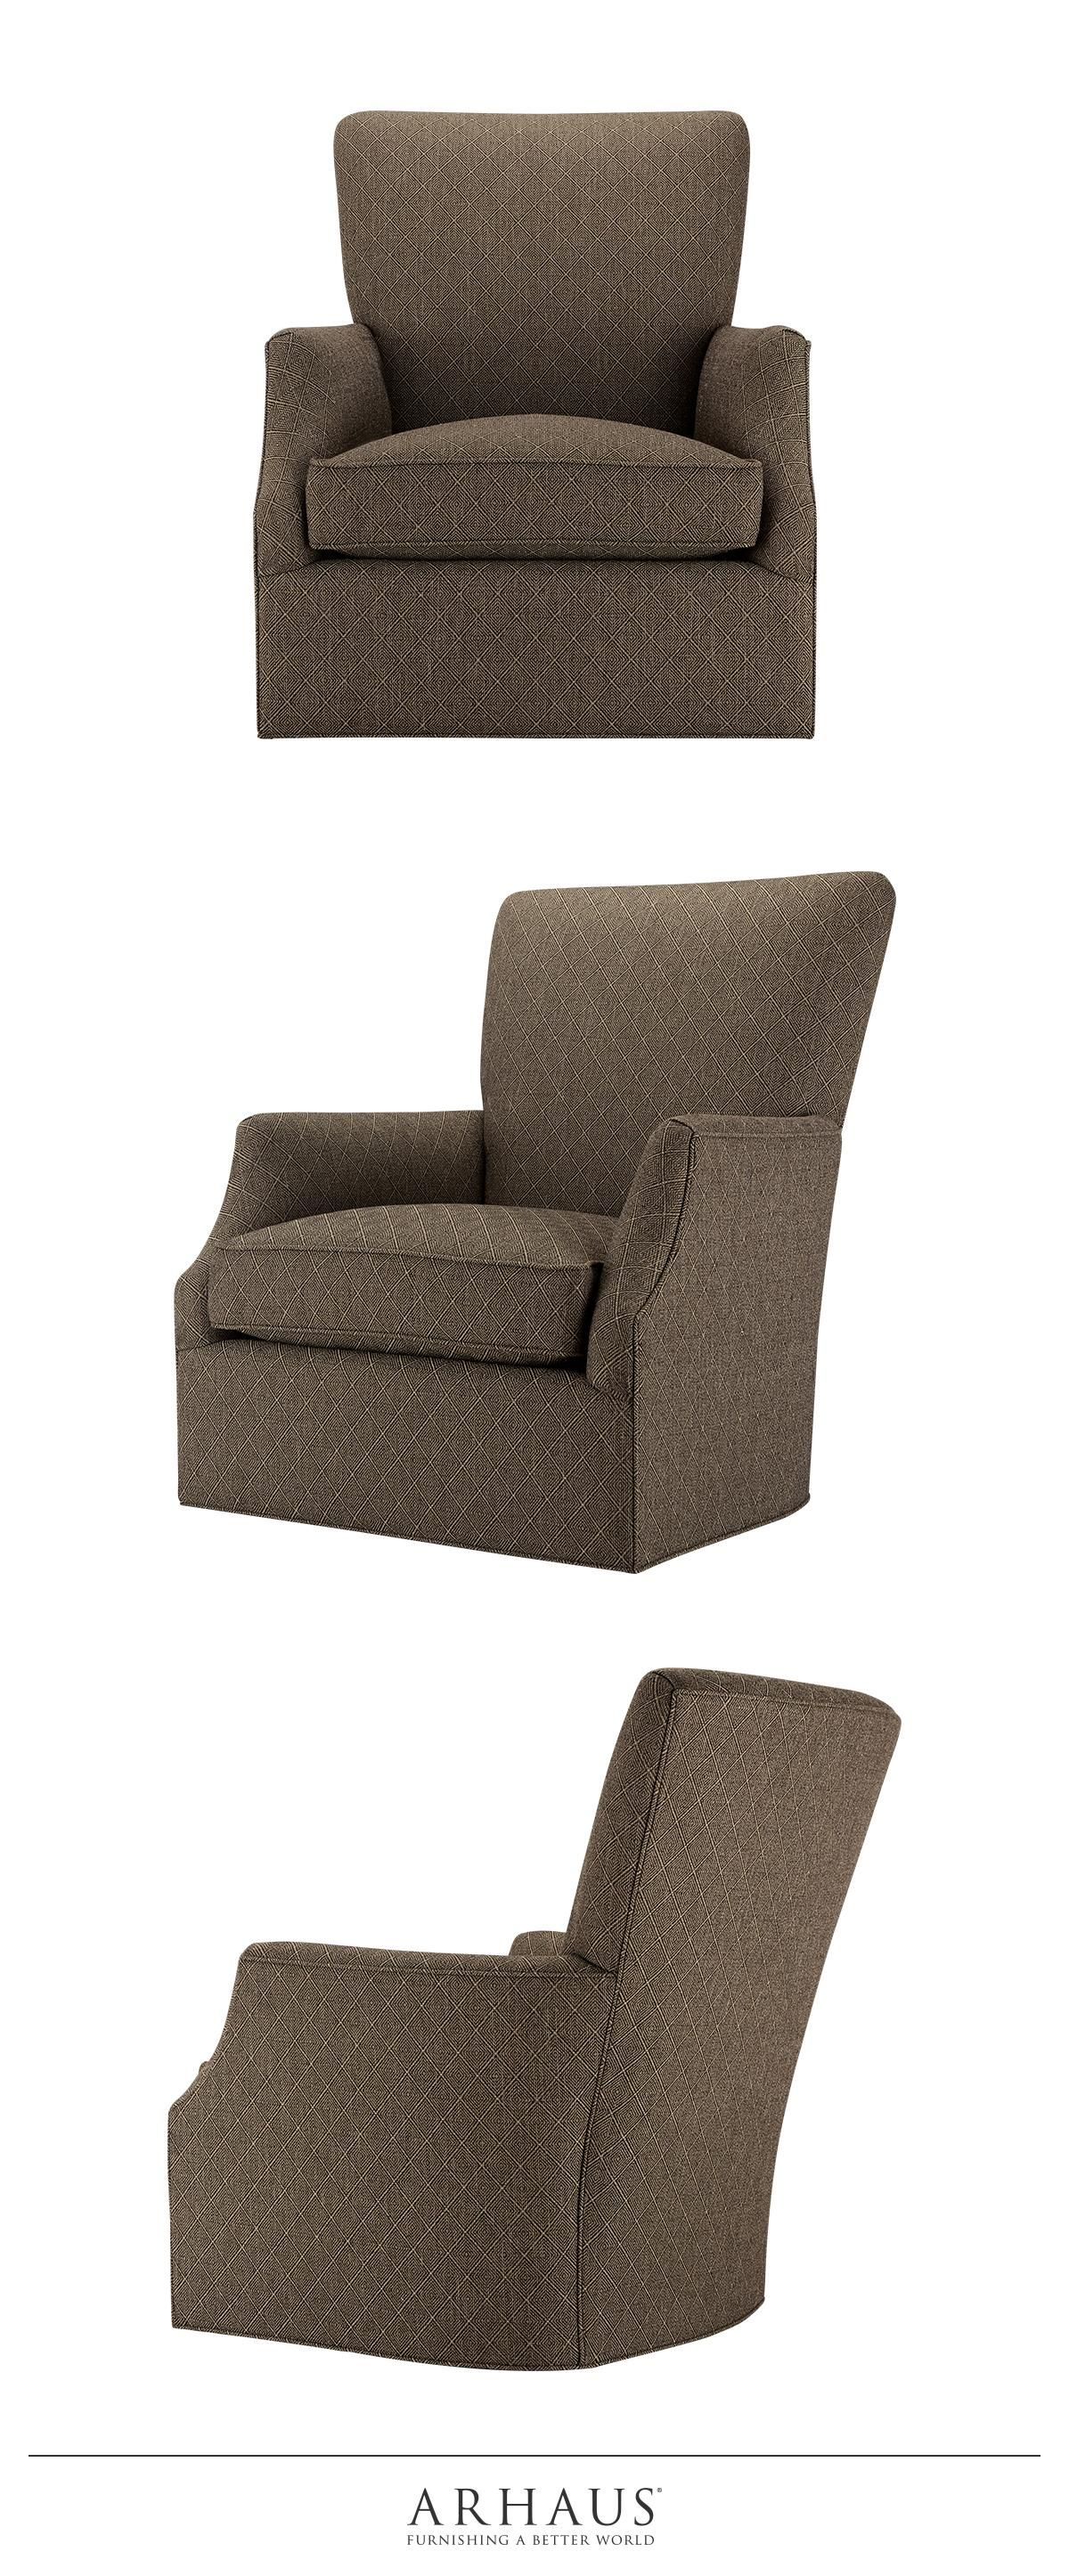 Incredible This Chair Swivels And Glides Shop Demond At Arhaus Onthecornerstone Fun Painted Chair Ideas Images Onthecornerstoneorg